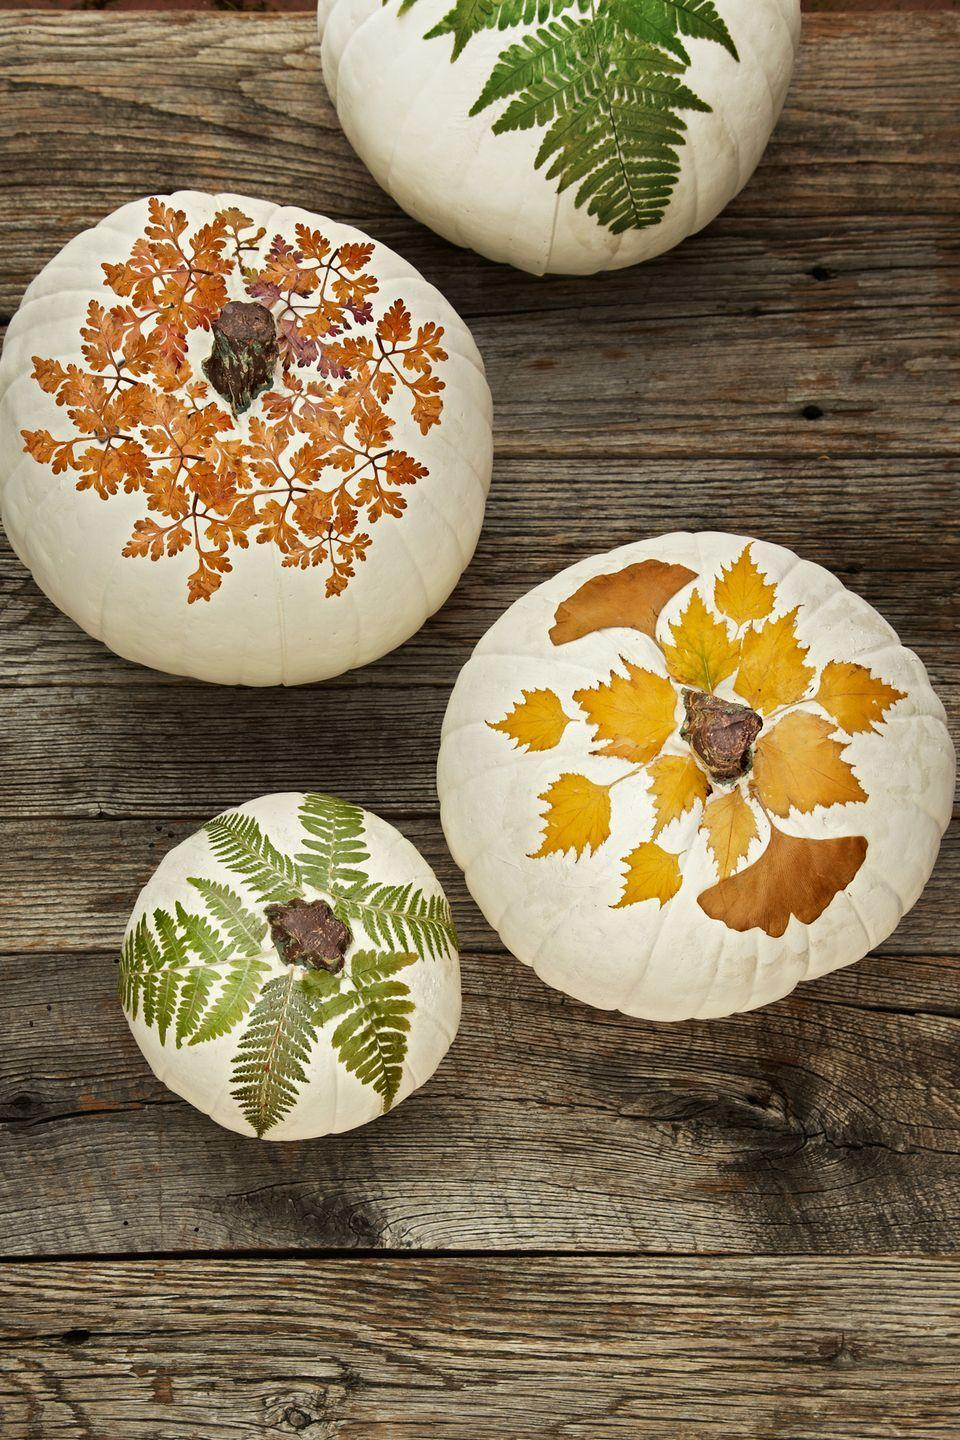 "<p>Put fall leaves to use as a crafting material for fun seasonal DIYs, like these foliage-covered pumpkins.</p><p><strong><a href=""https://www.countryliving.com/home-design/decorating-ideas/advice/g1536/fall-decorating-ideas/?slide=6"" rel=""nofollow noopener"" target=""_blank"" data-ylk=""slk:Get the tutorial"" class=""link rapid-noclick-resp"">Get the tutorial</a>.</strong></p>"